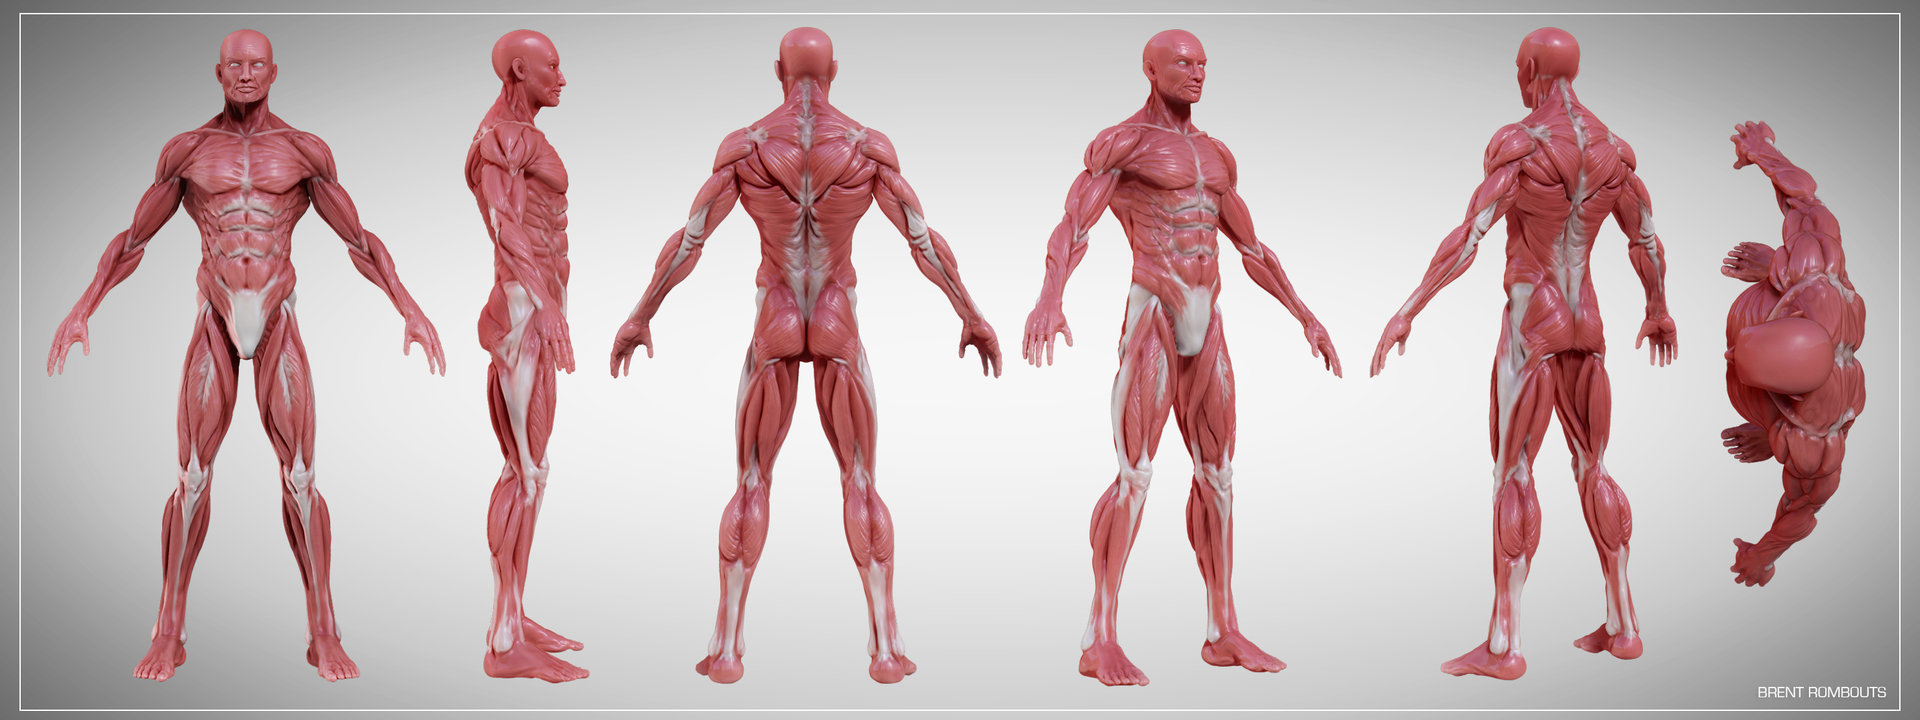 ArtStation - Anatomy Study with turntable, Brent Rombouts